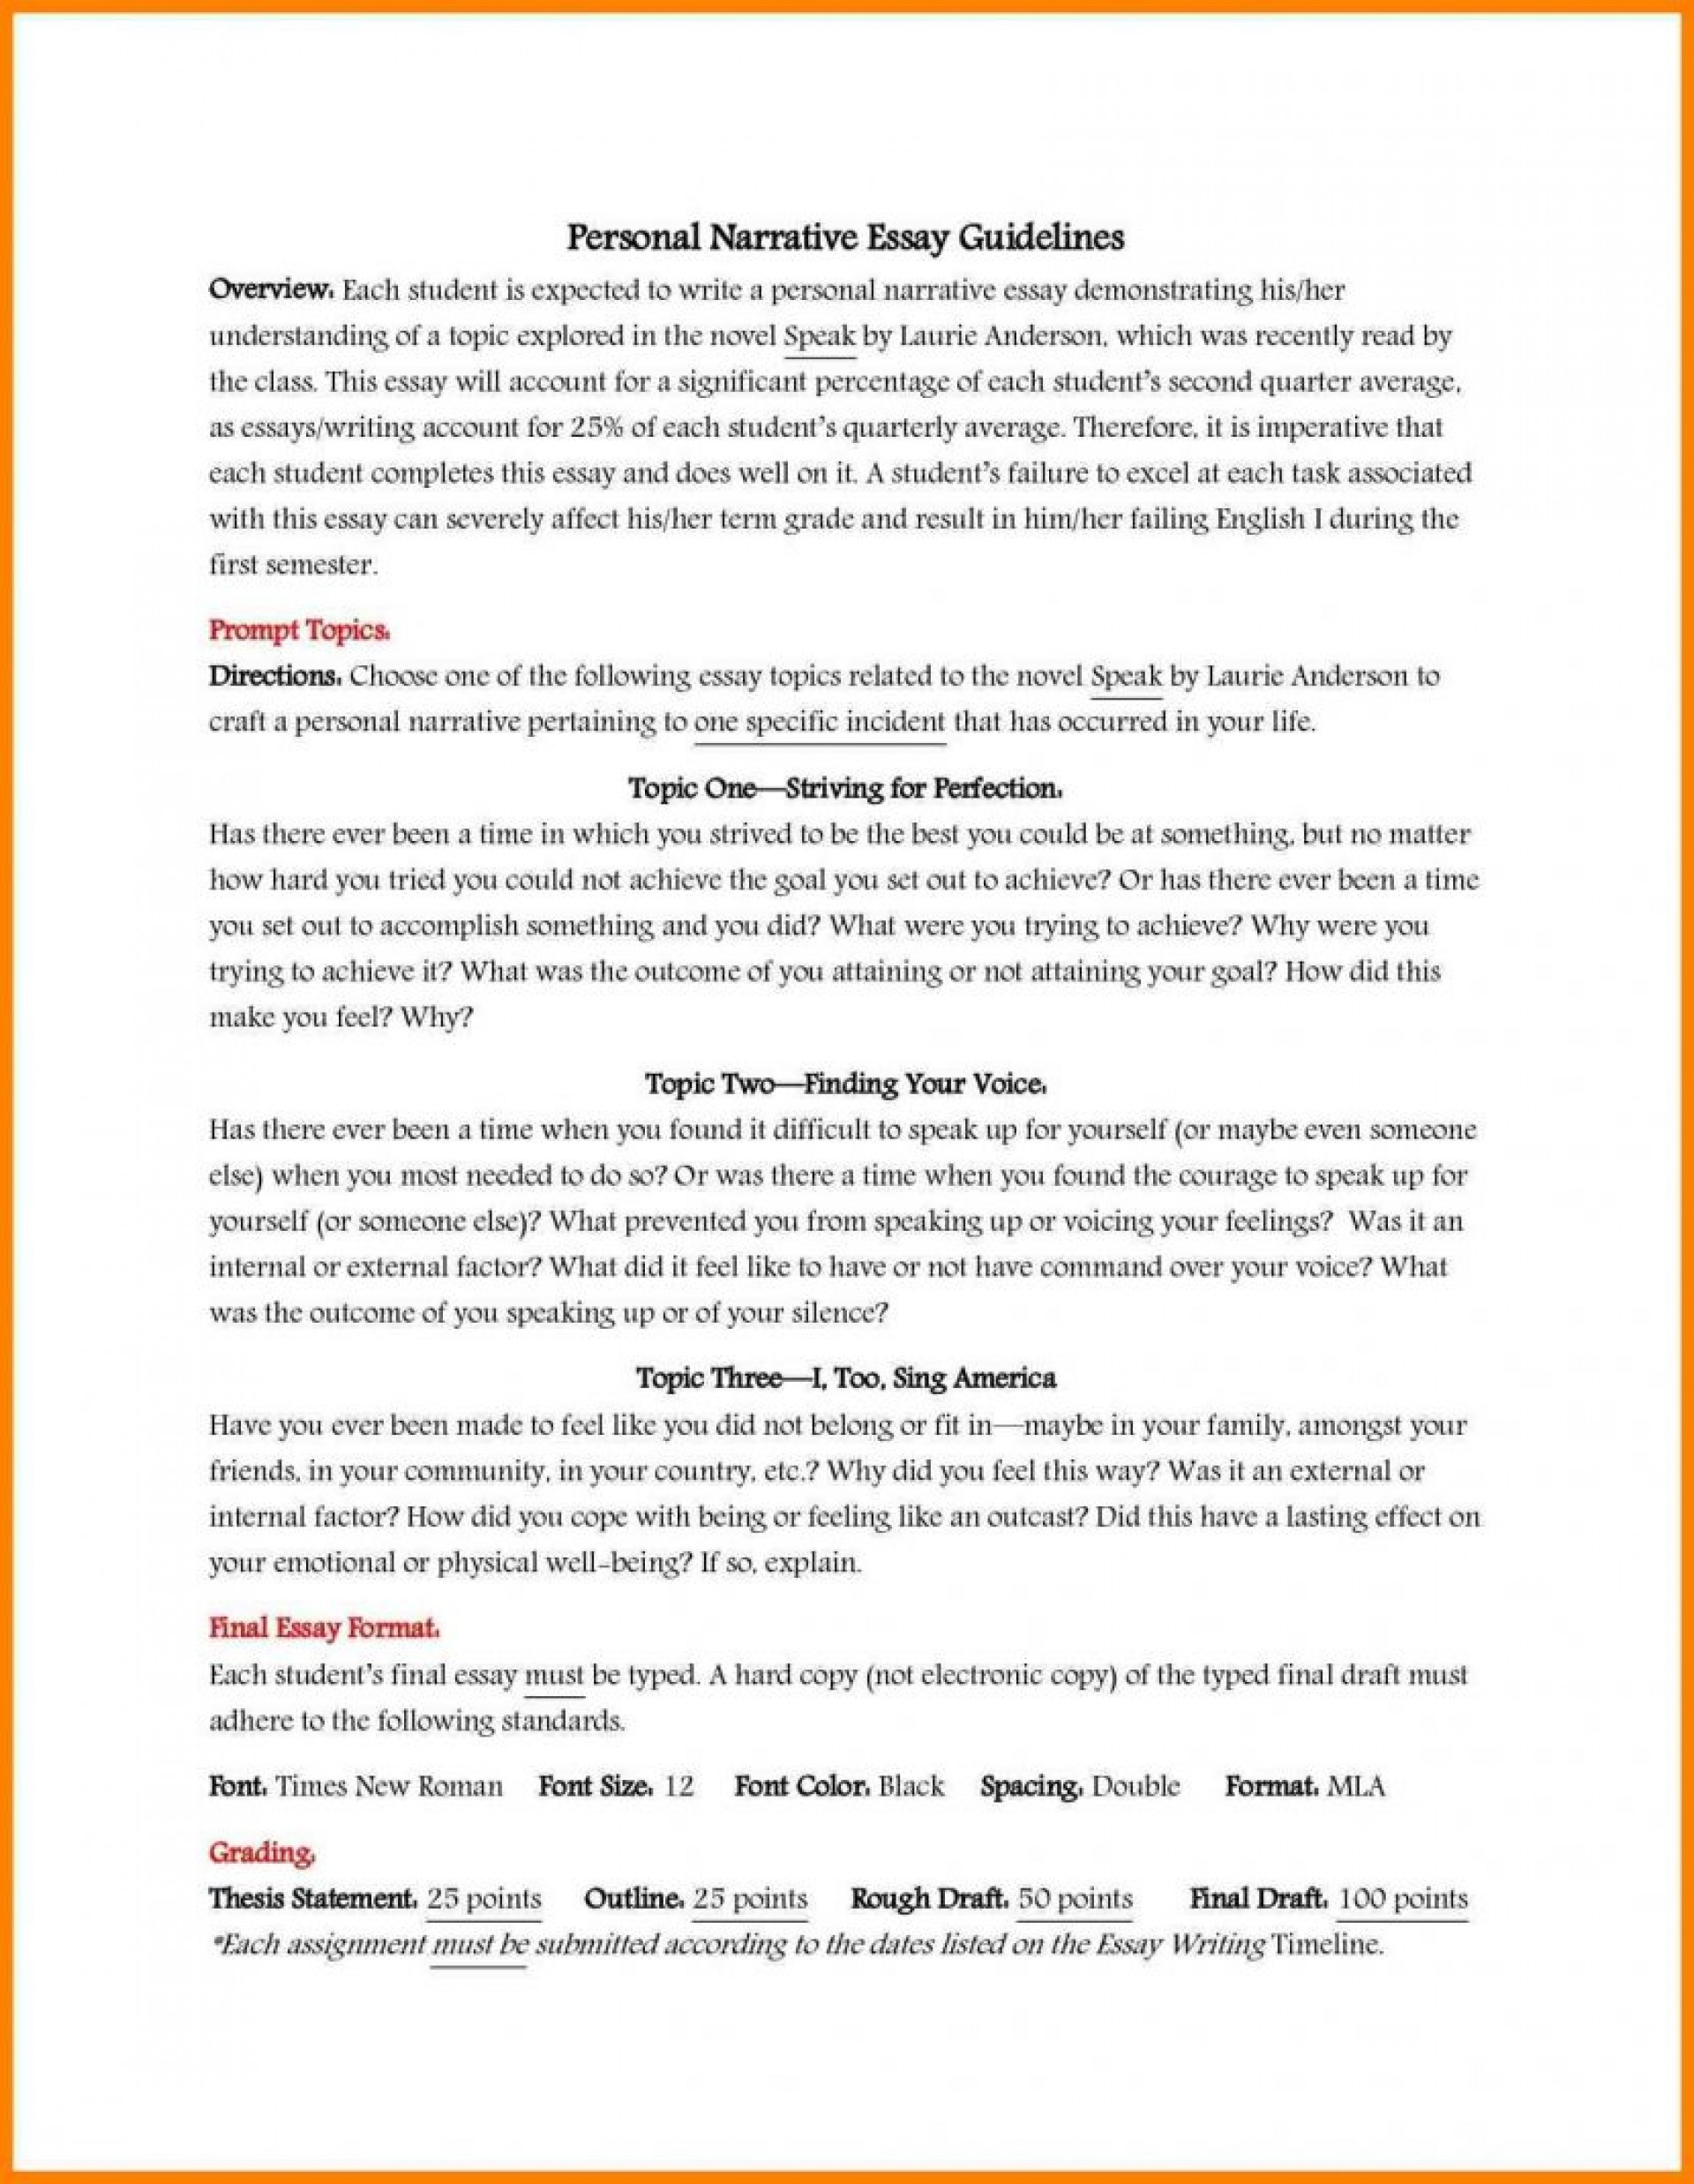 021 Essay Example Free Essays Topics Homework Service How To Write An History Narrative For High School Format Picture Wr Explaining Bake Cake Teaching Child Explain From Book Stirring Questions Grade 10 Before 1877 Students 1920